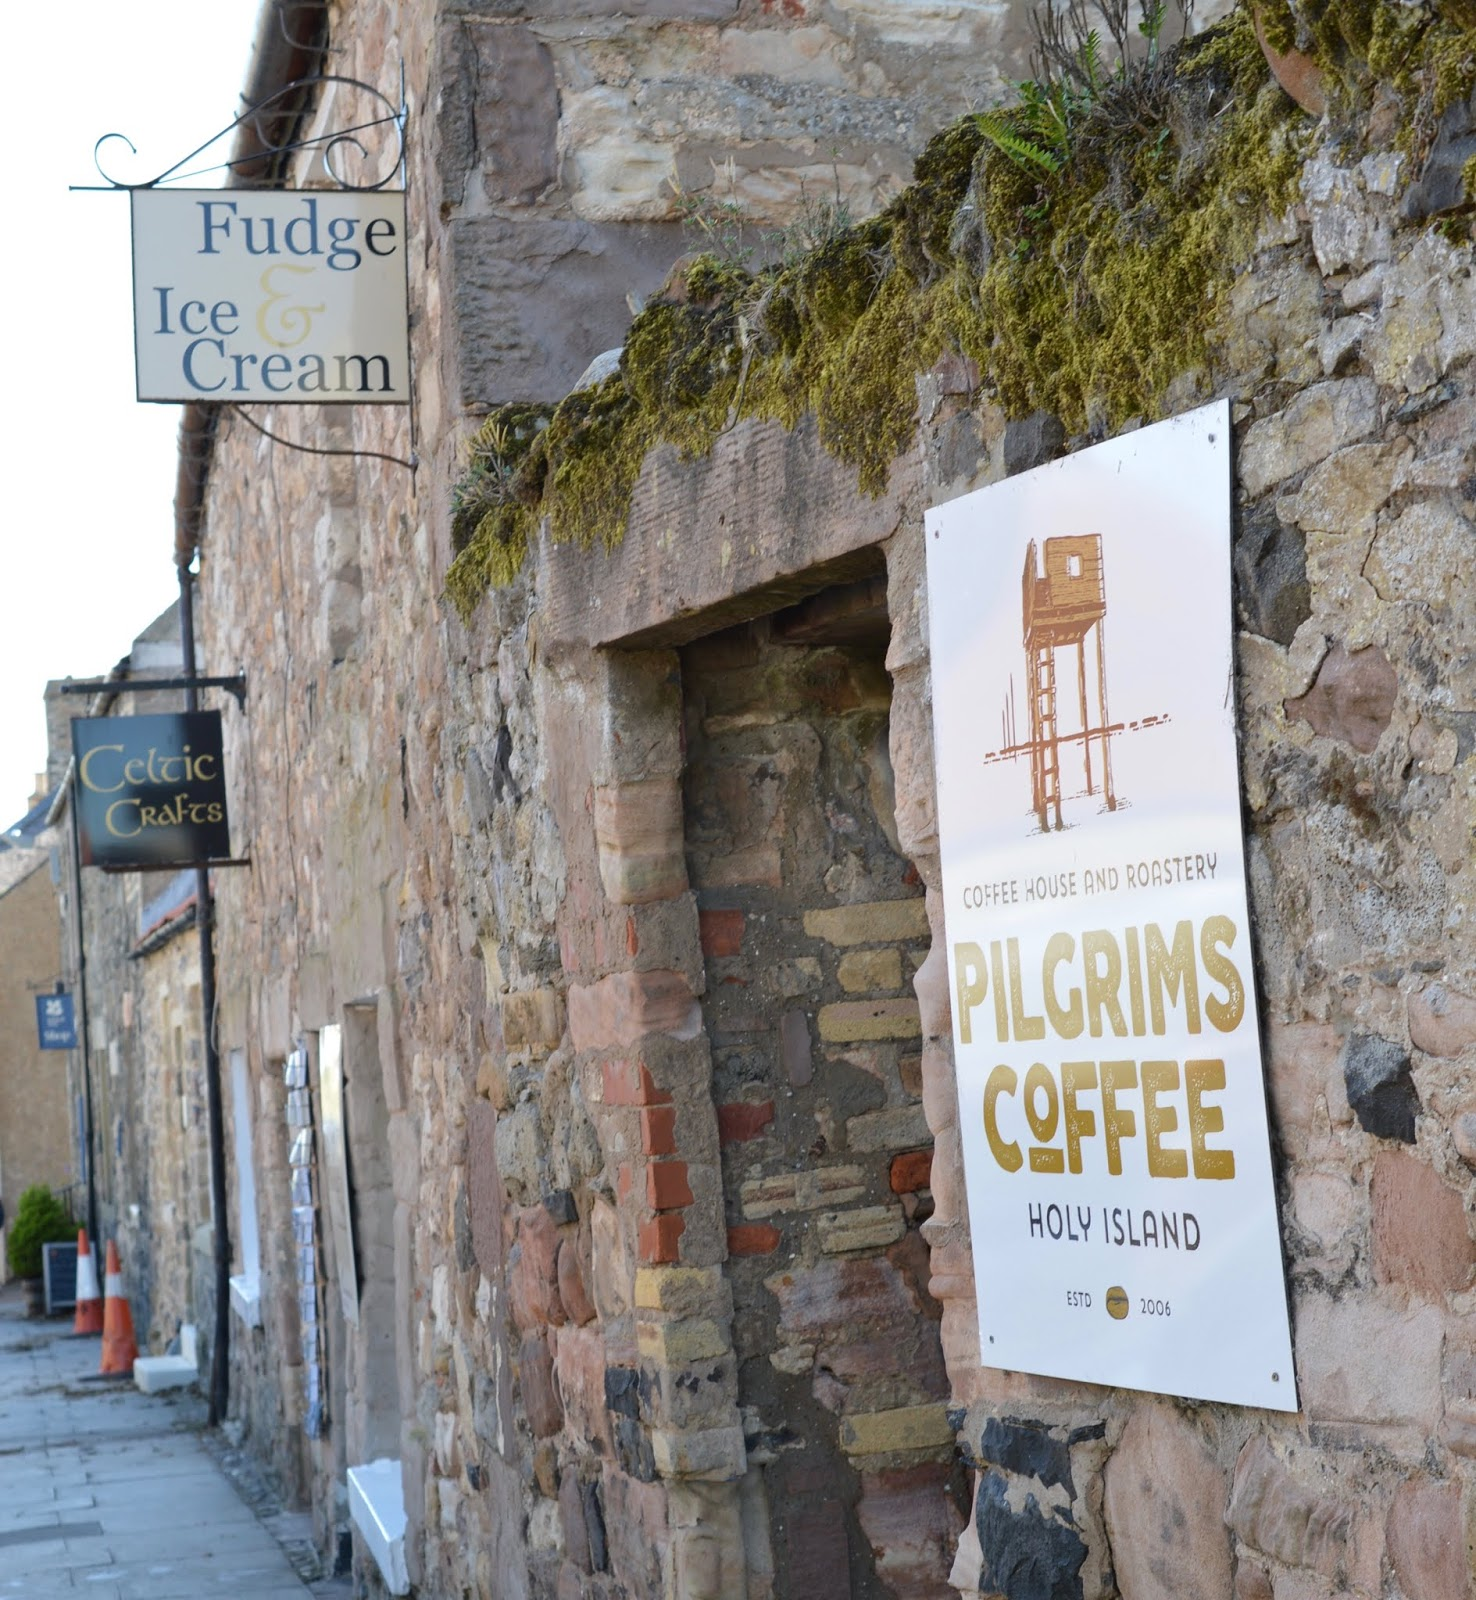 The Holy Island of Lindisfarne, Northumberland - what to see and do during a half day visit - pilgrims coffee entrance